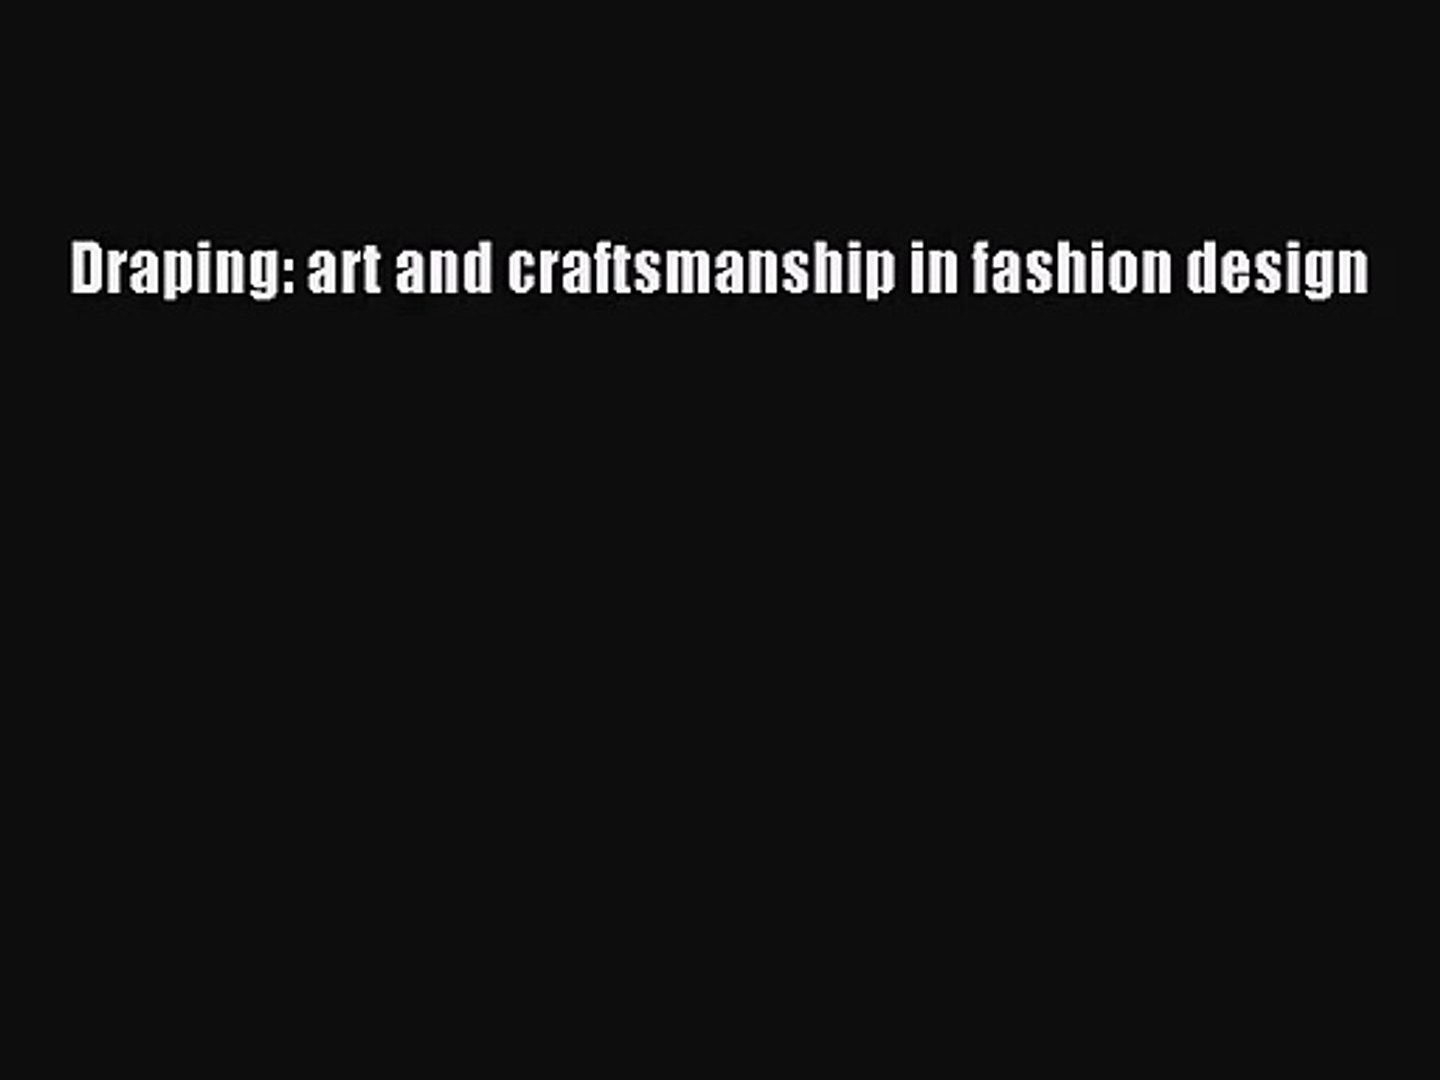 Pdf Download Draping Art And Craftsmanship In Fashion Design Pdf Full Ebook Video Dailymotion